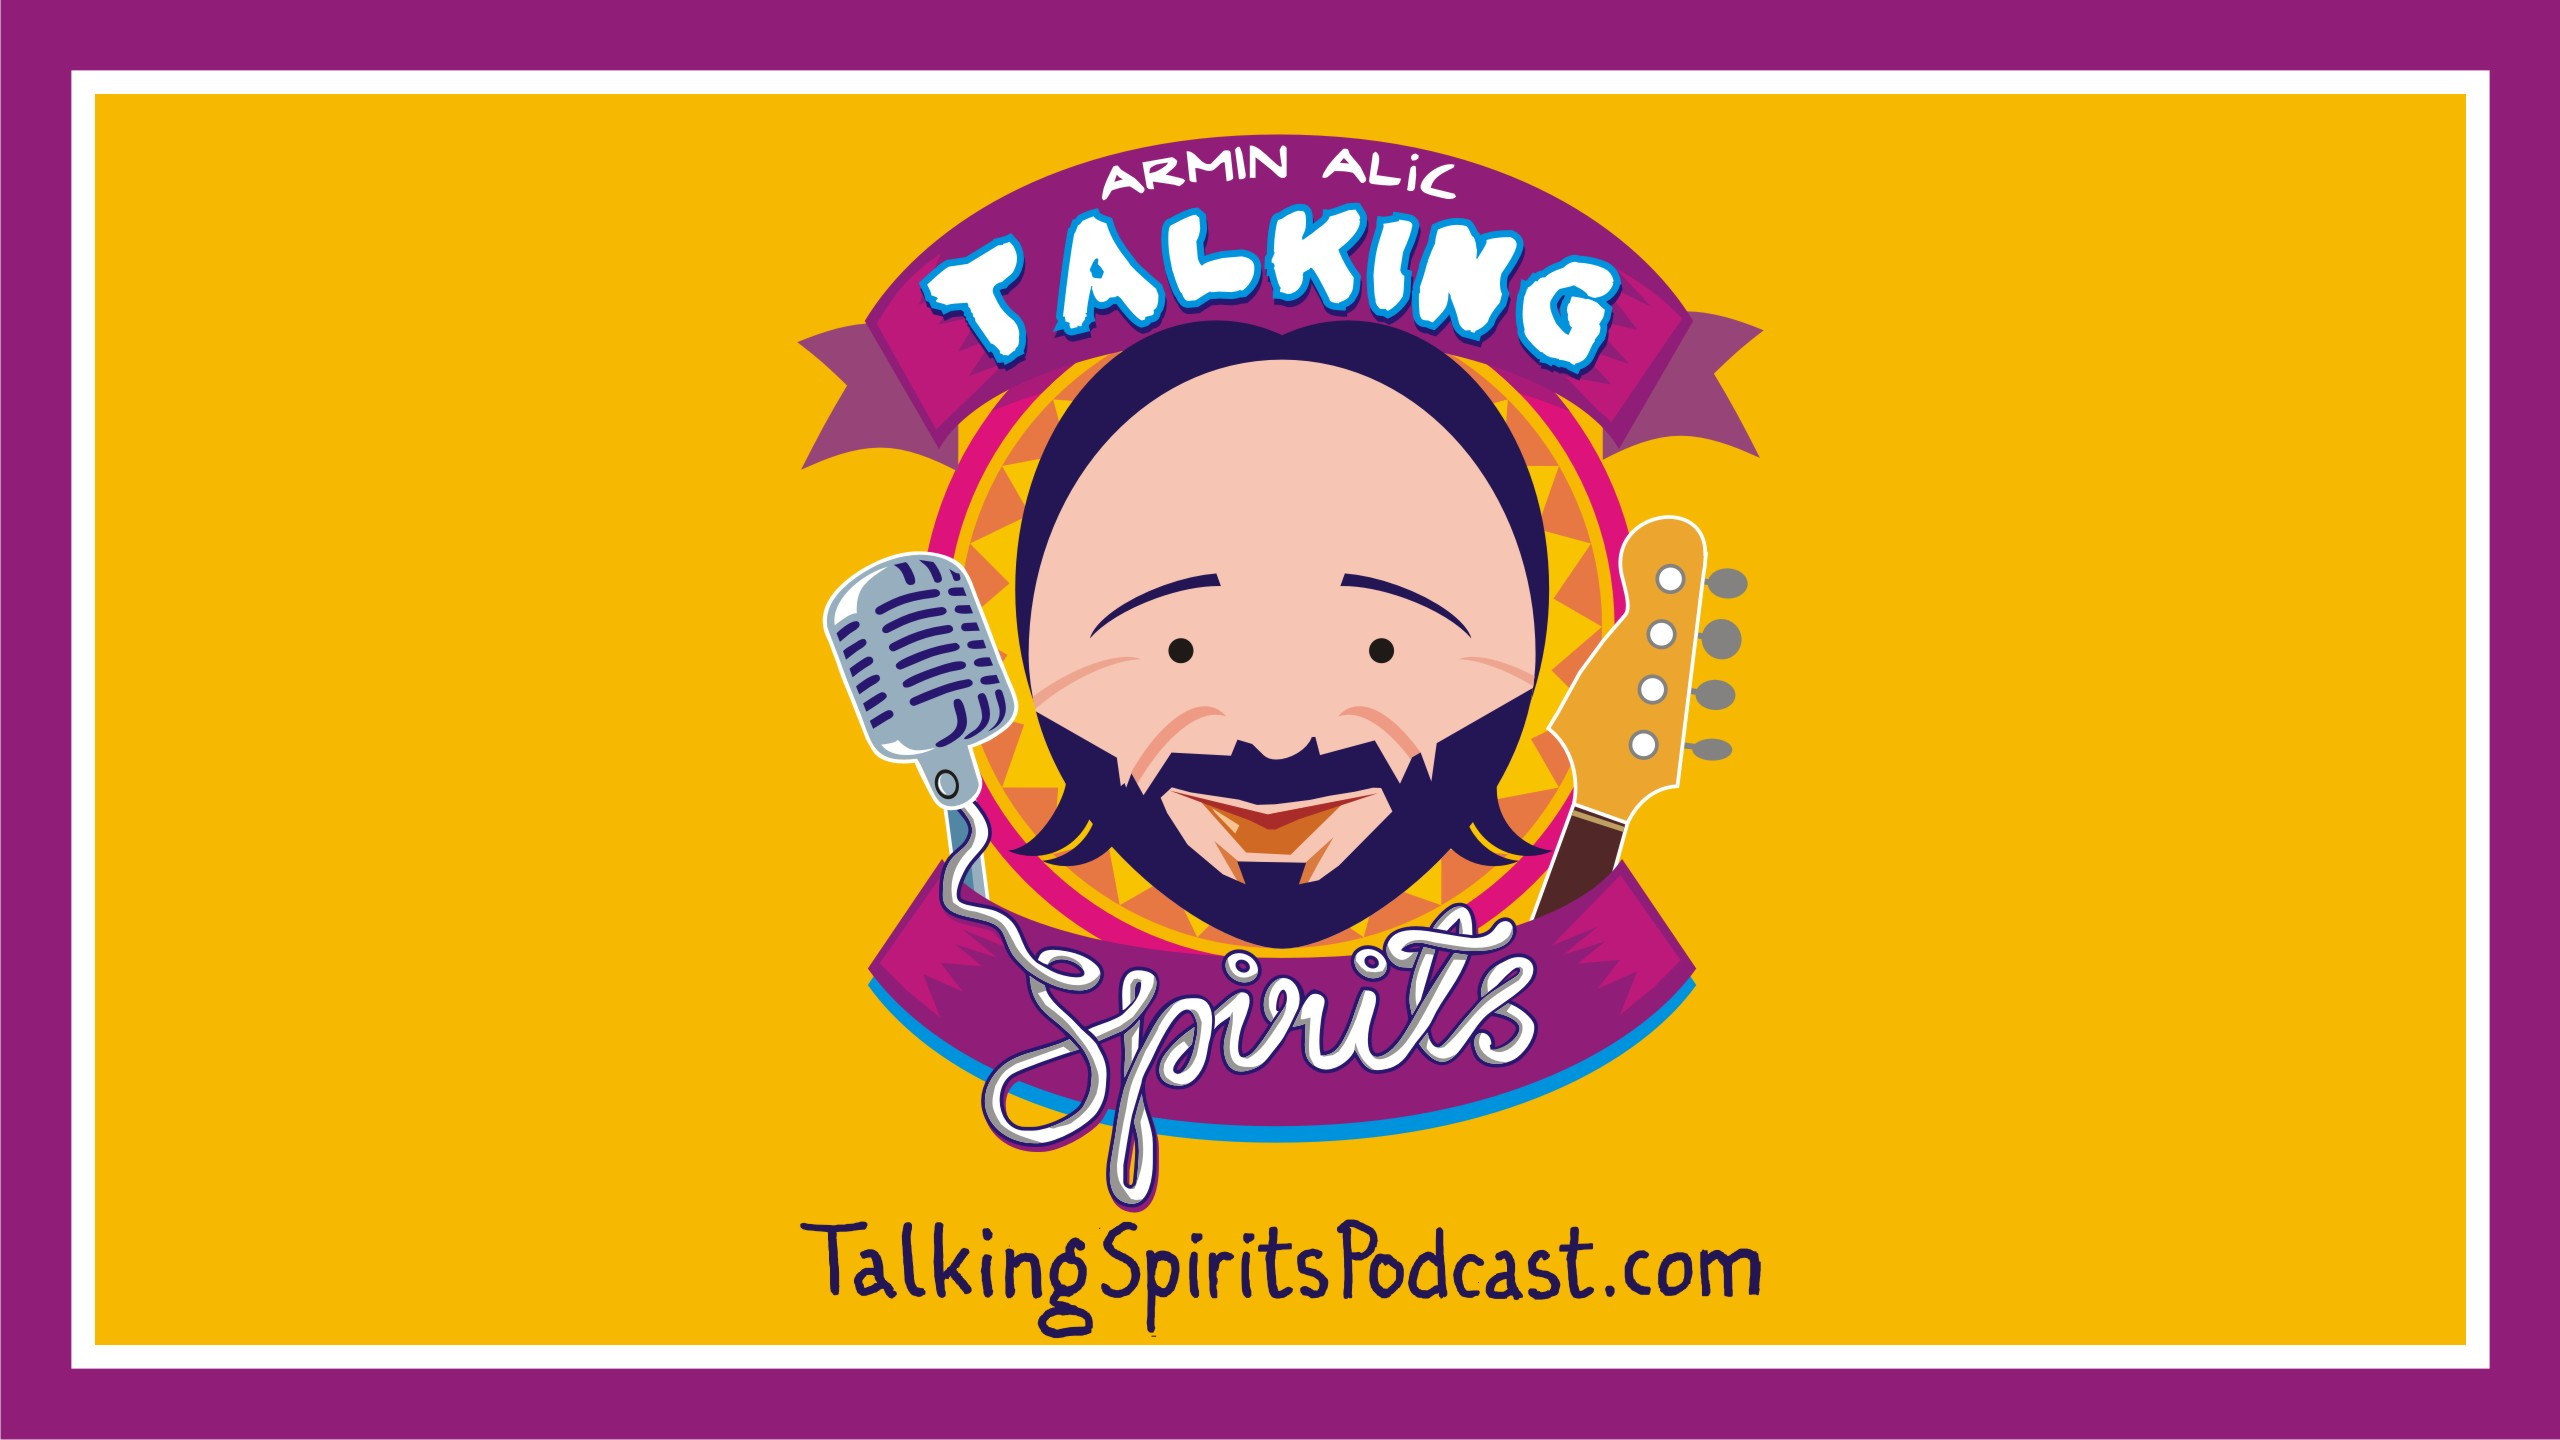 TALKING SPIRITS PODCAST